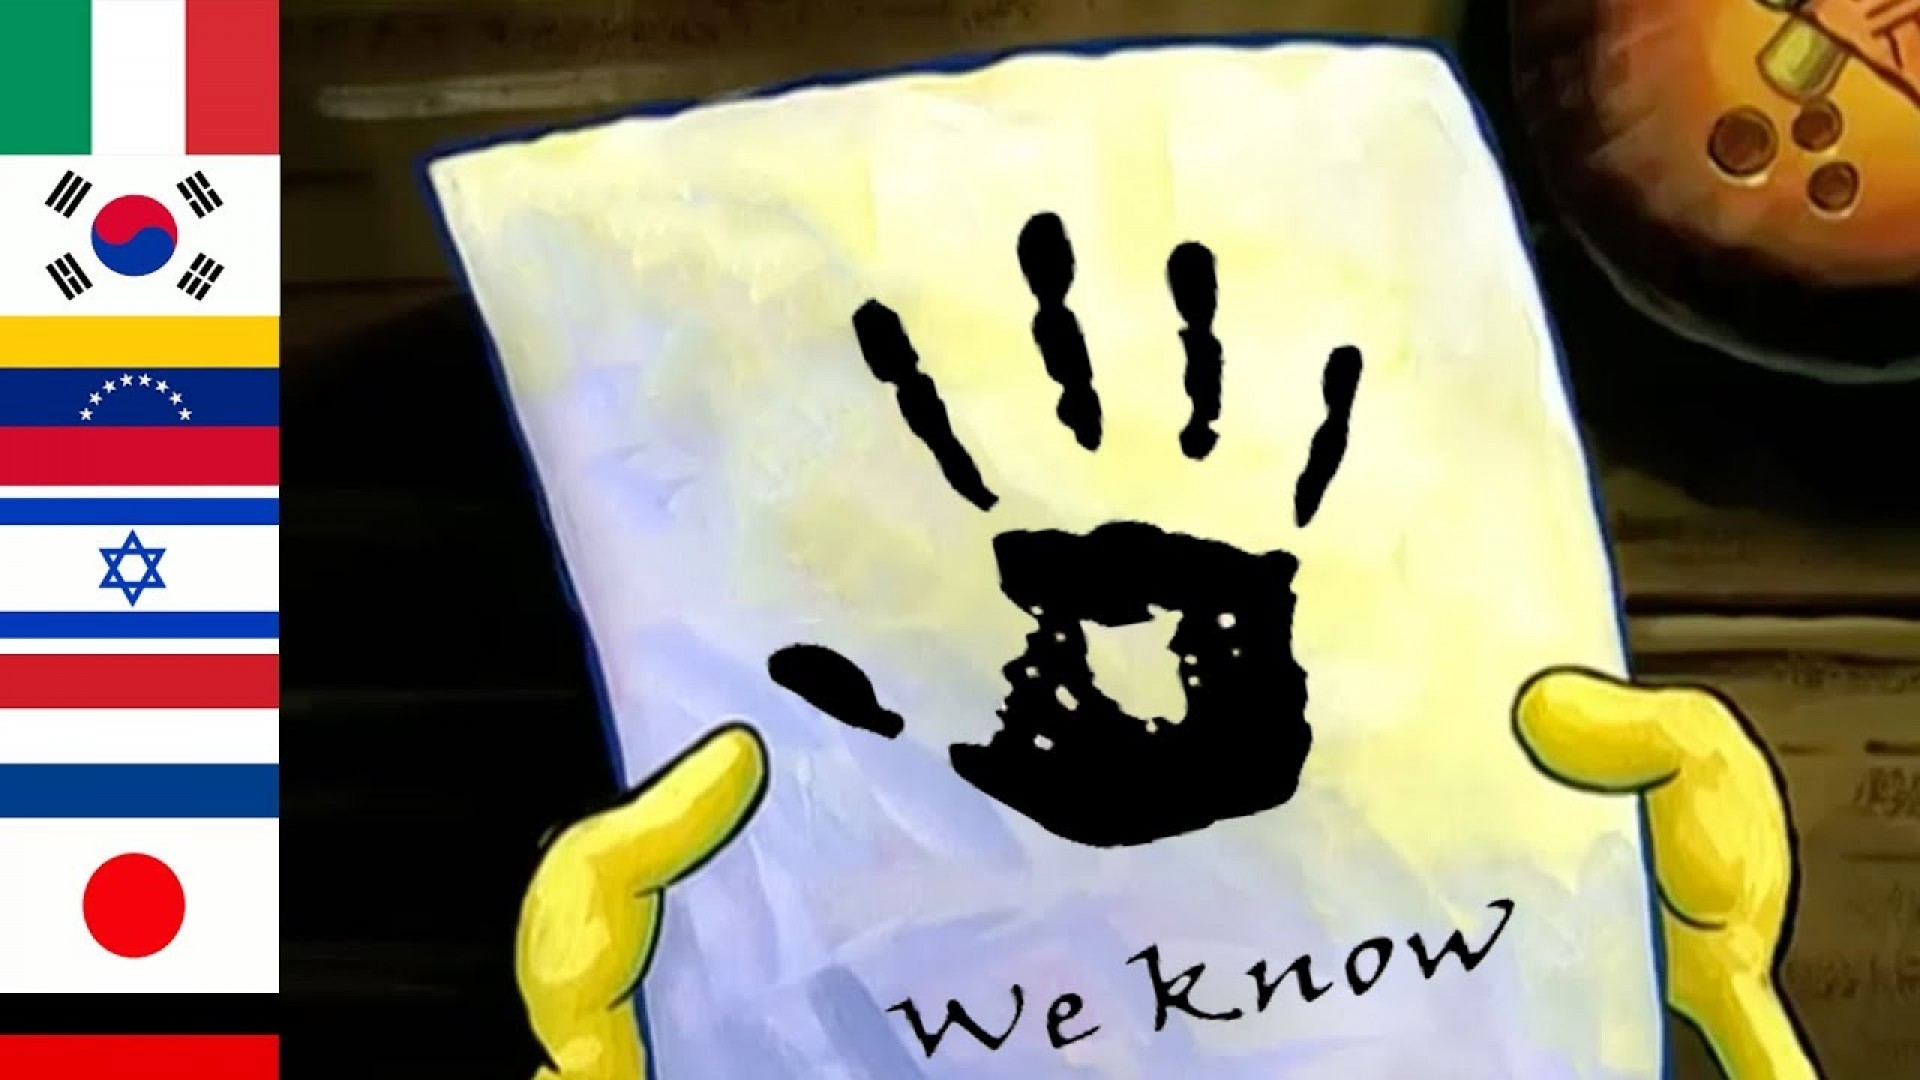 015 Spongebob Writing Essay Gif Example Writes An In Different Languages Youtube Rap Maxresde The Meme Font For Archaicawful 1920